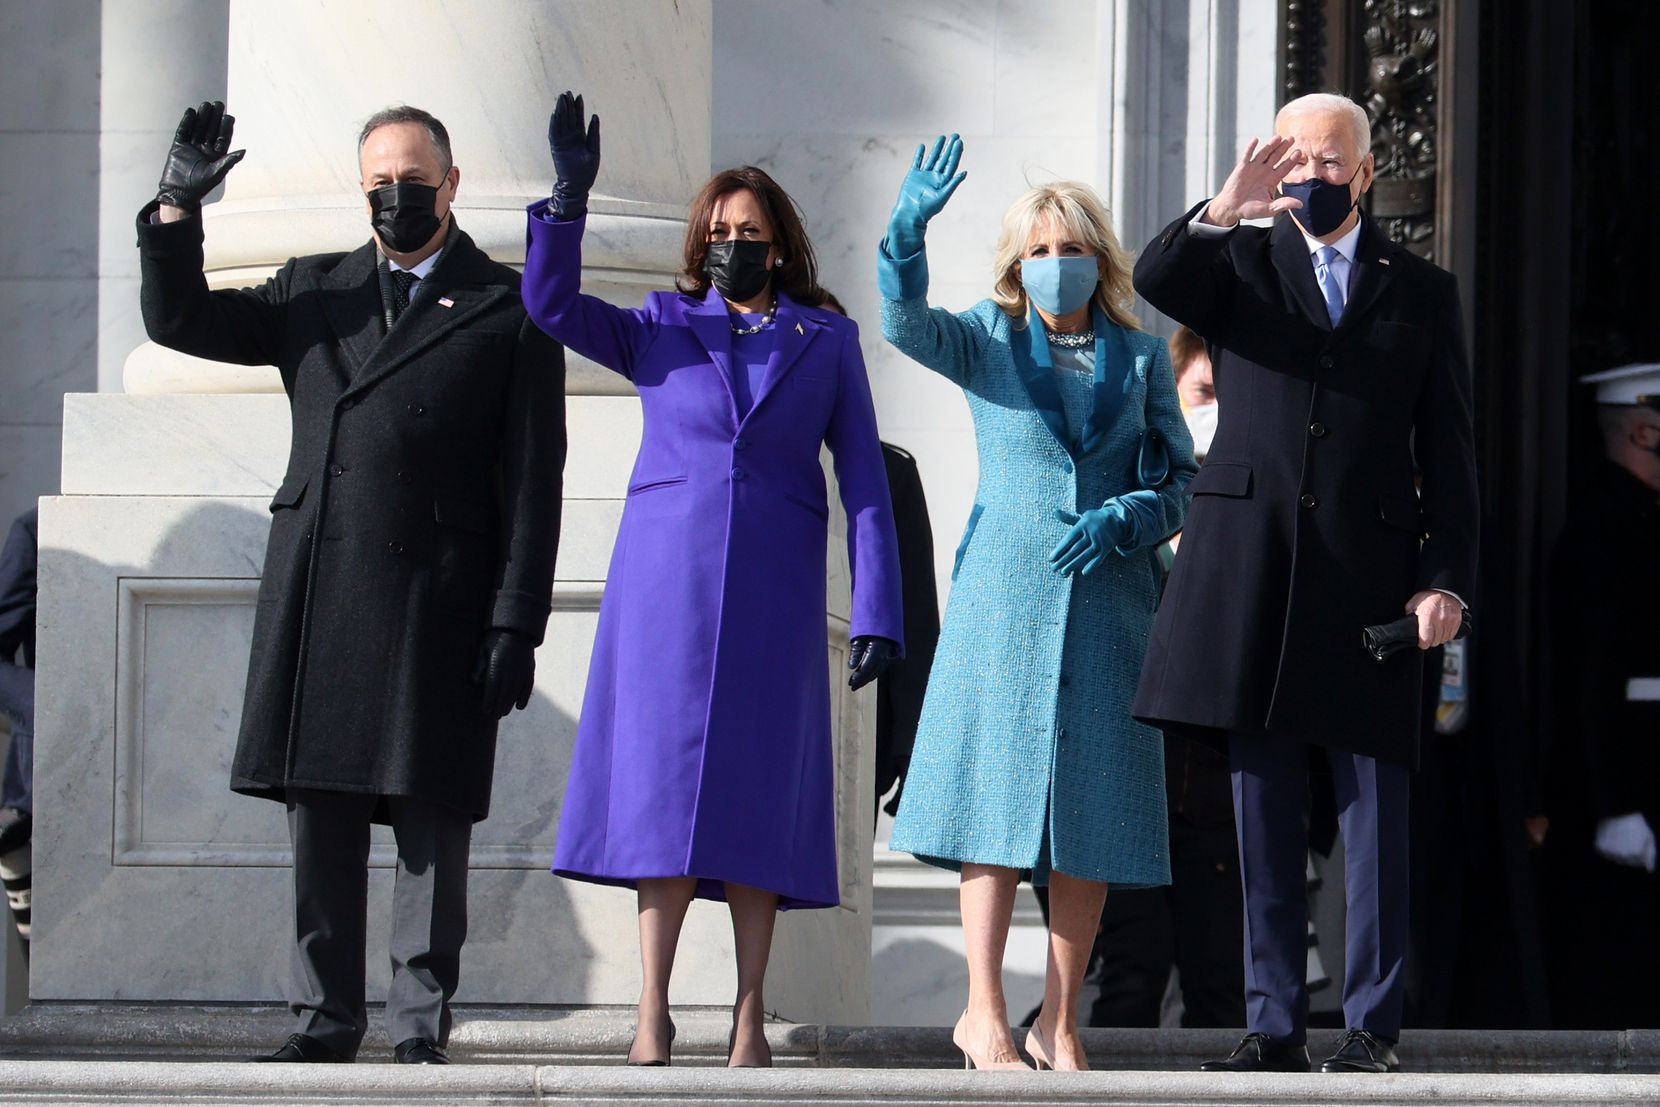 From left, Doug Emhoff, U.S. Vice President-elect Kamala Harris, Jill Biden and President-elect Joe Biden wave as they arrive on the East Front of the U.S. Capitol for  the inauguration on Jan. 20.